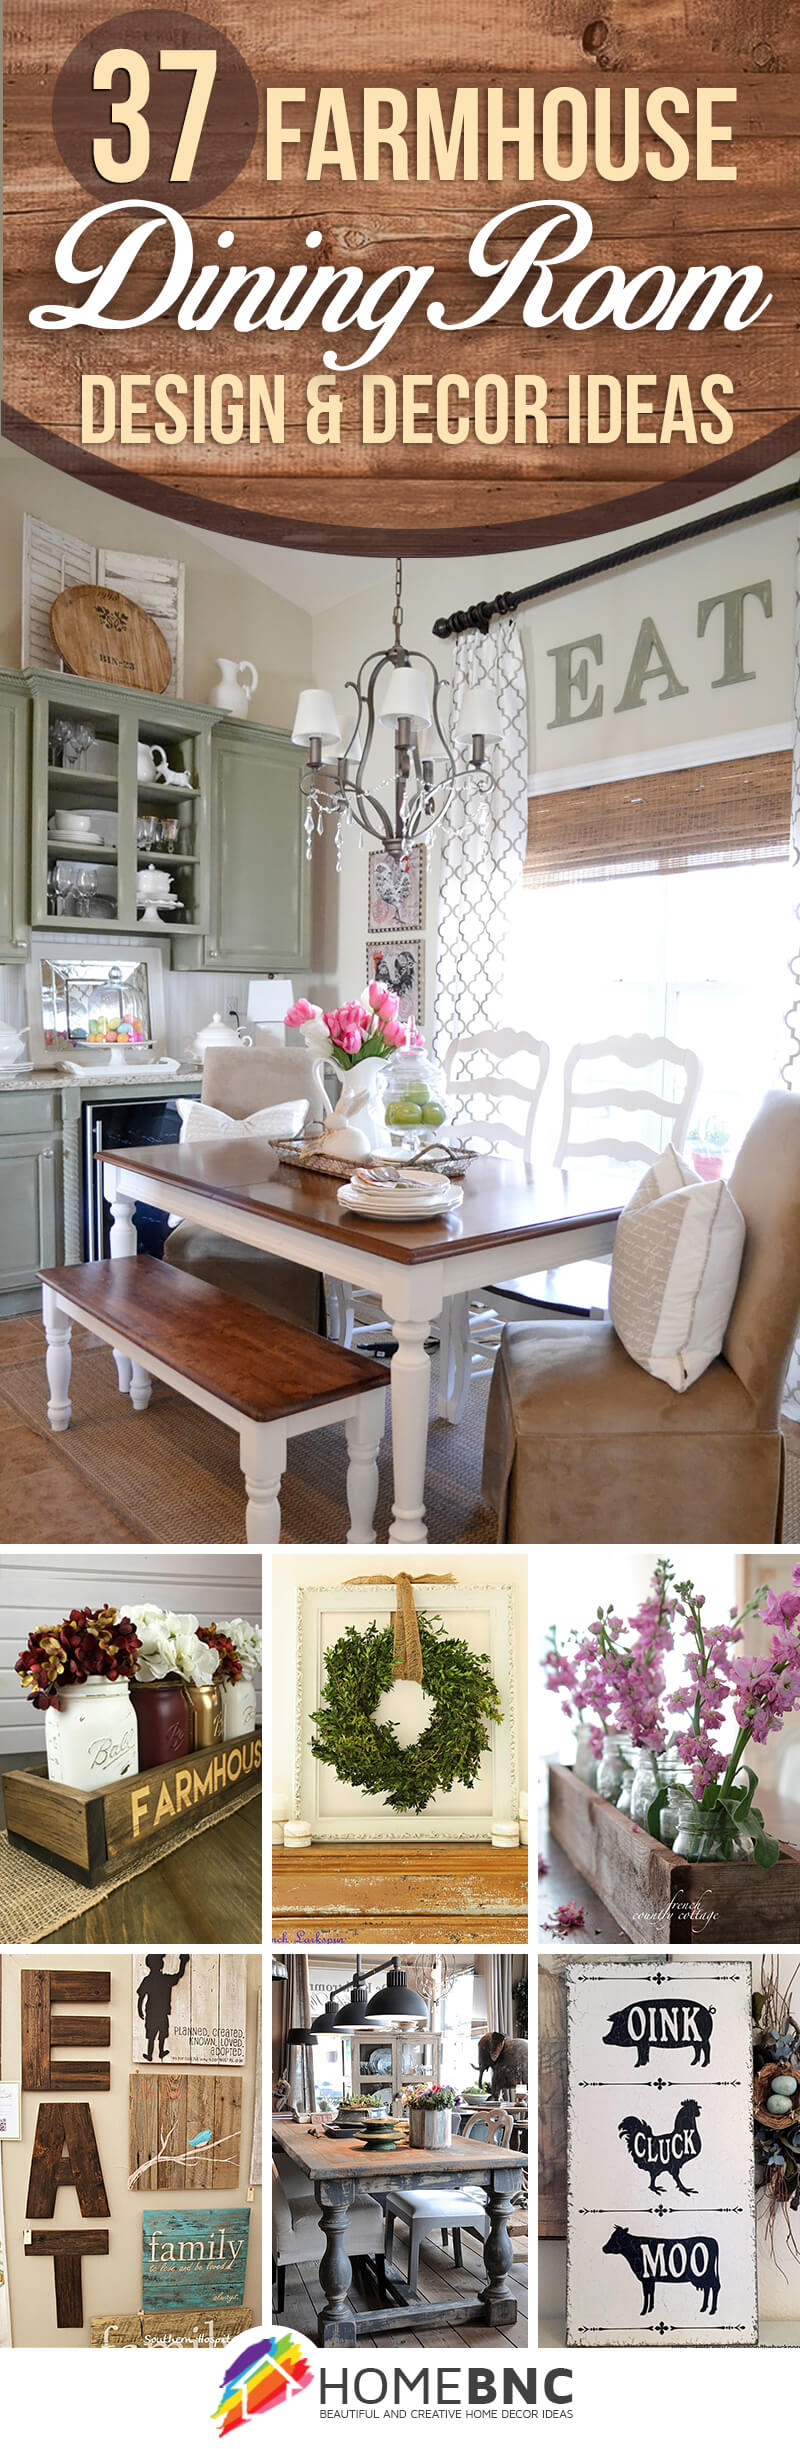 37 Best Farmhouse Dining Room Design And Decor Ideas For 2021